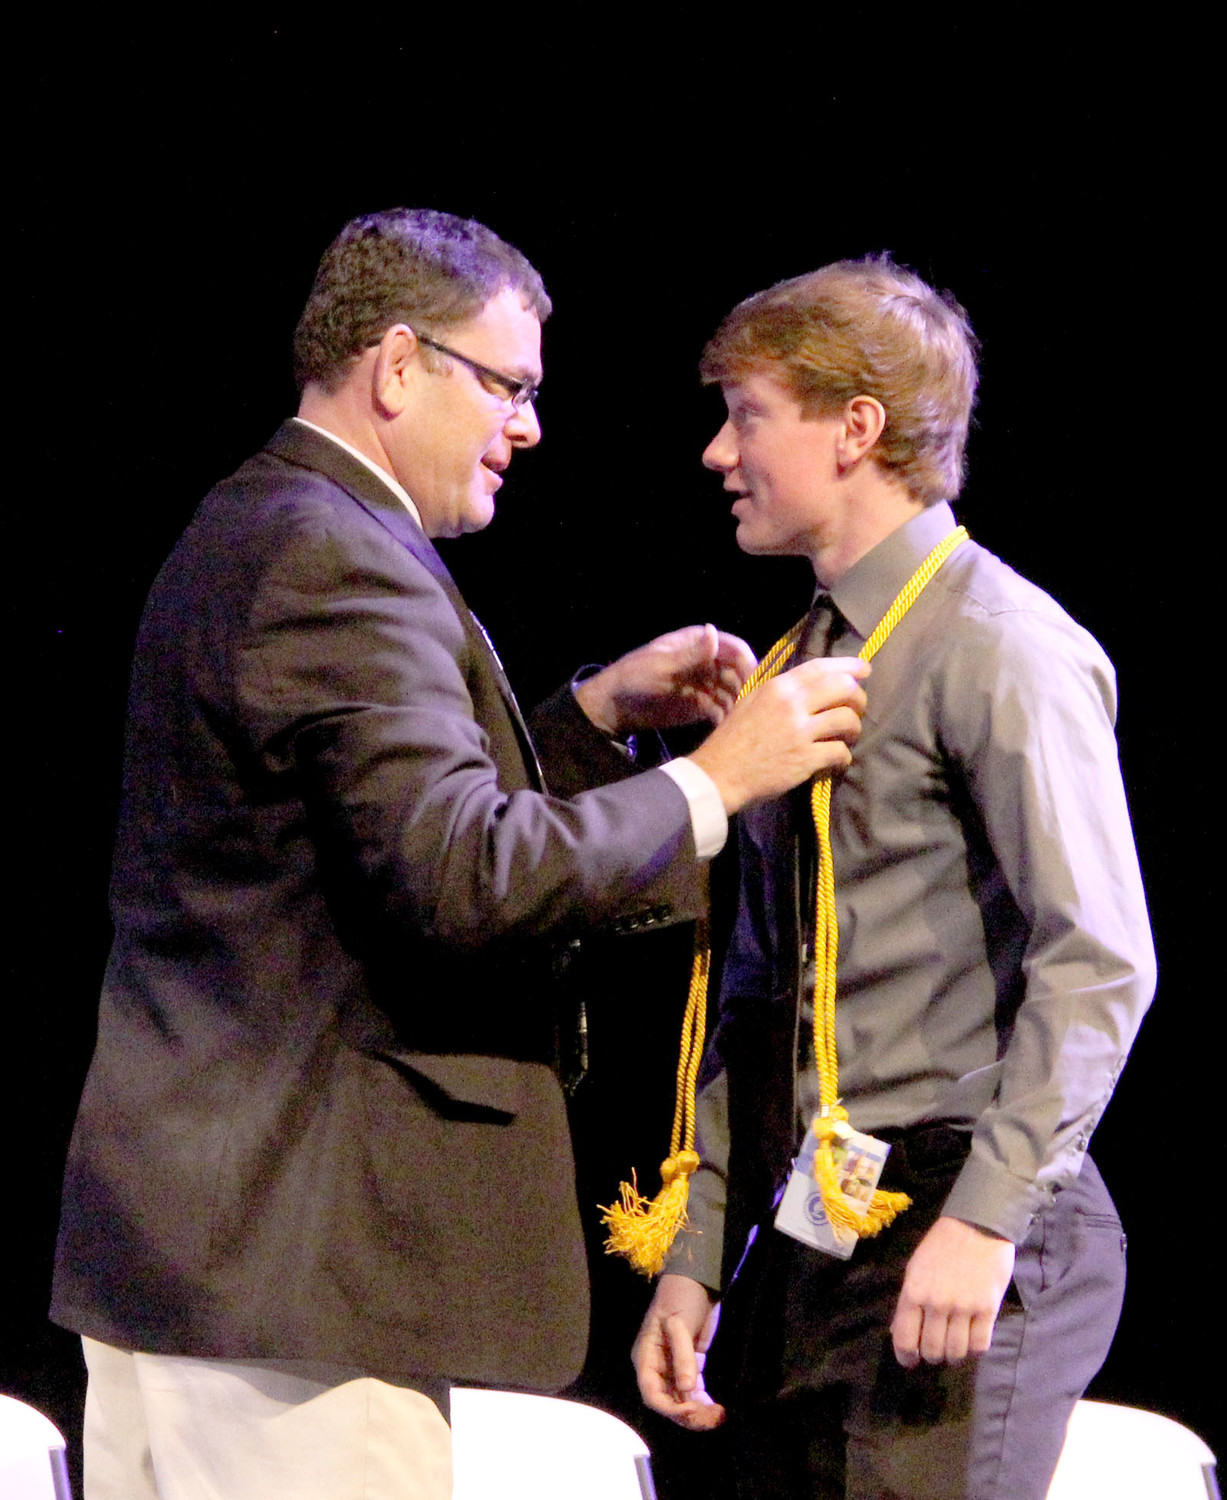 Superintendent Joe Stutting drapes honors cords on Tony Barrecca.